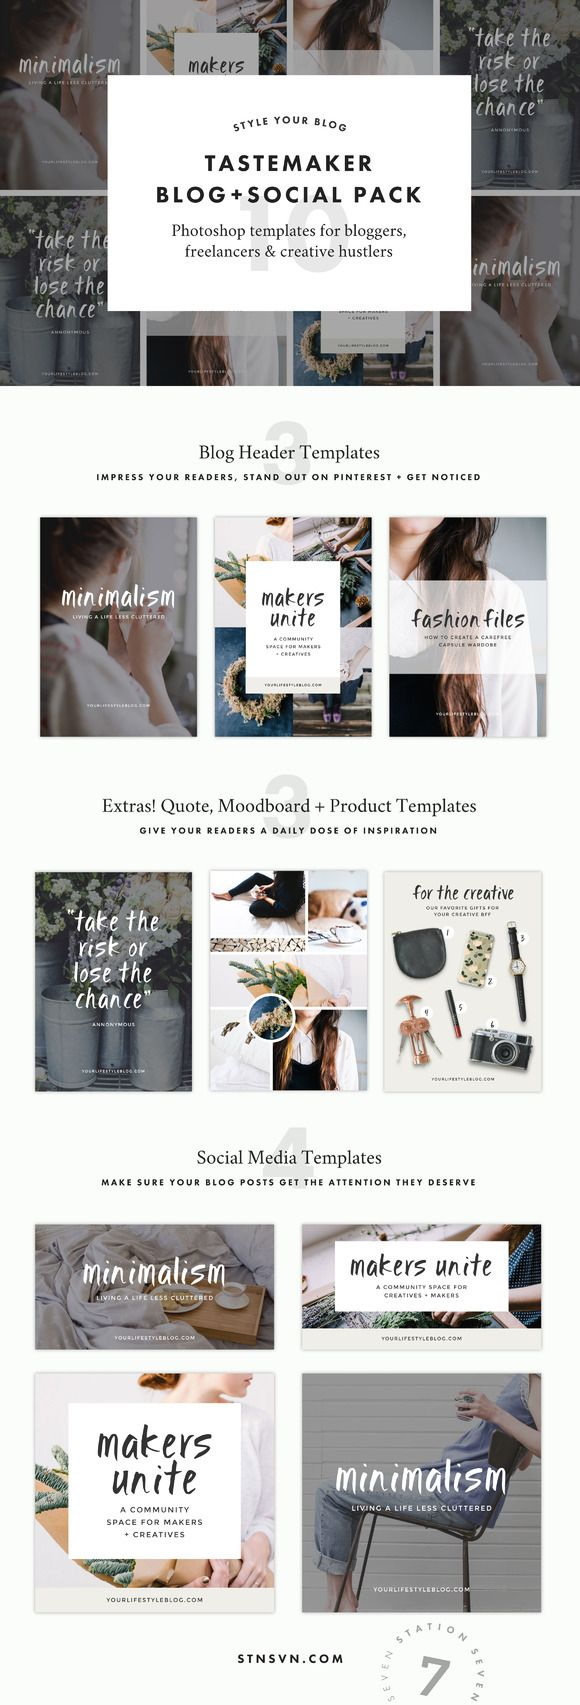 Tastemaker Blog Social Pack by Station